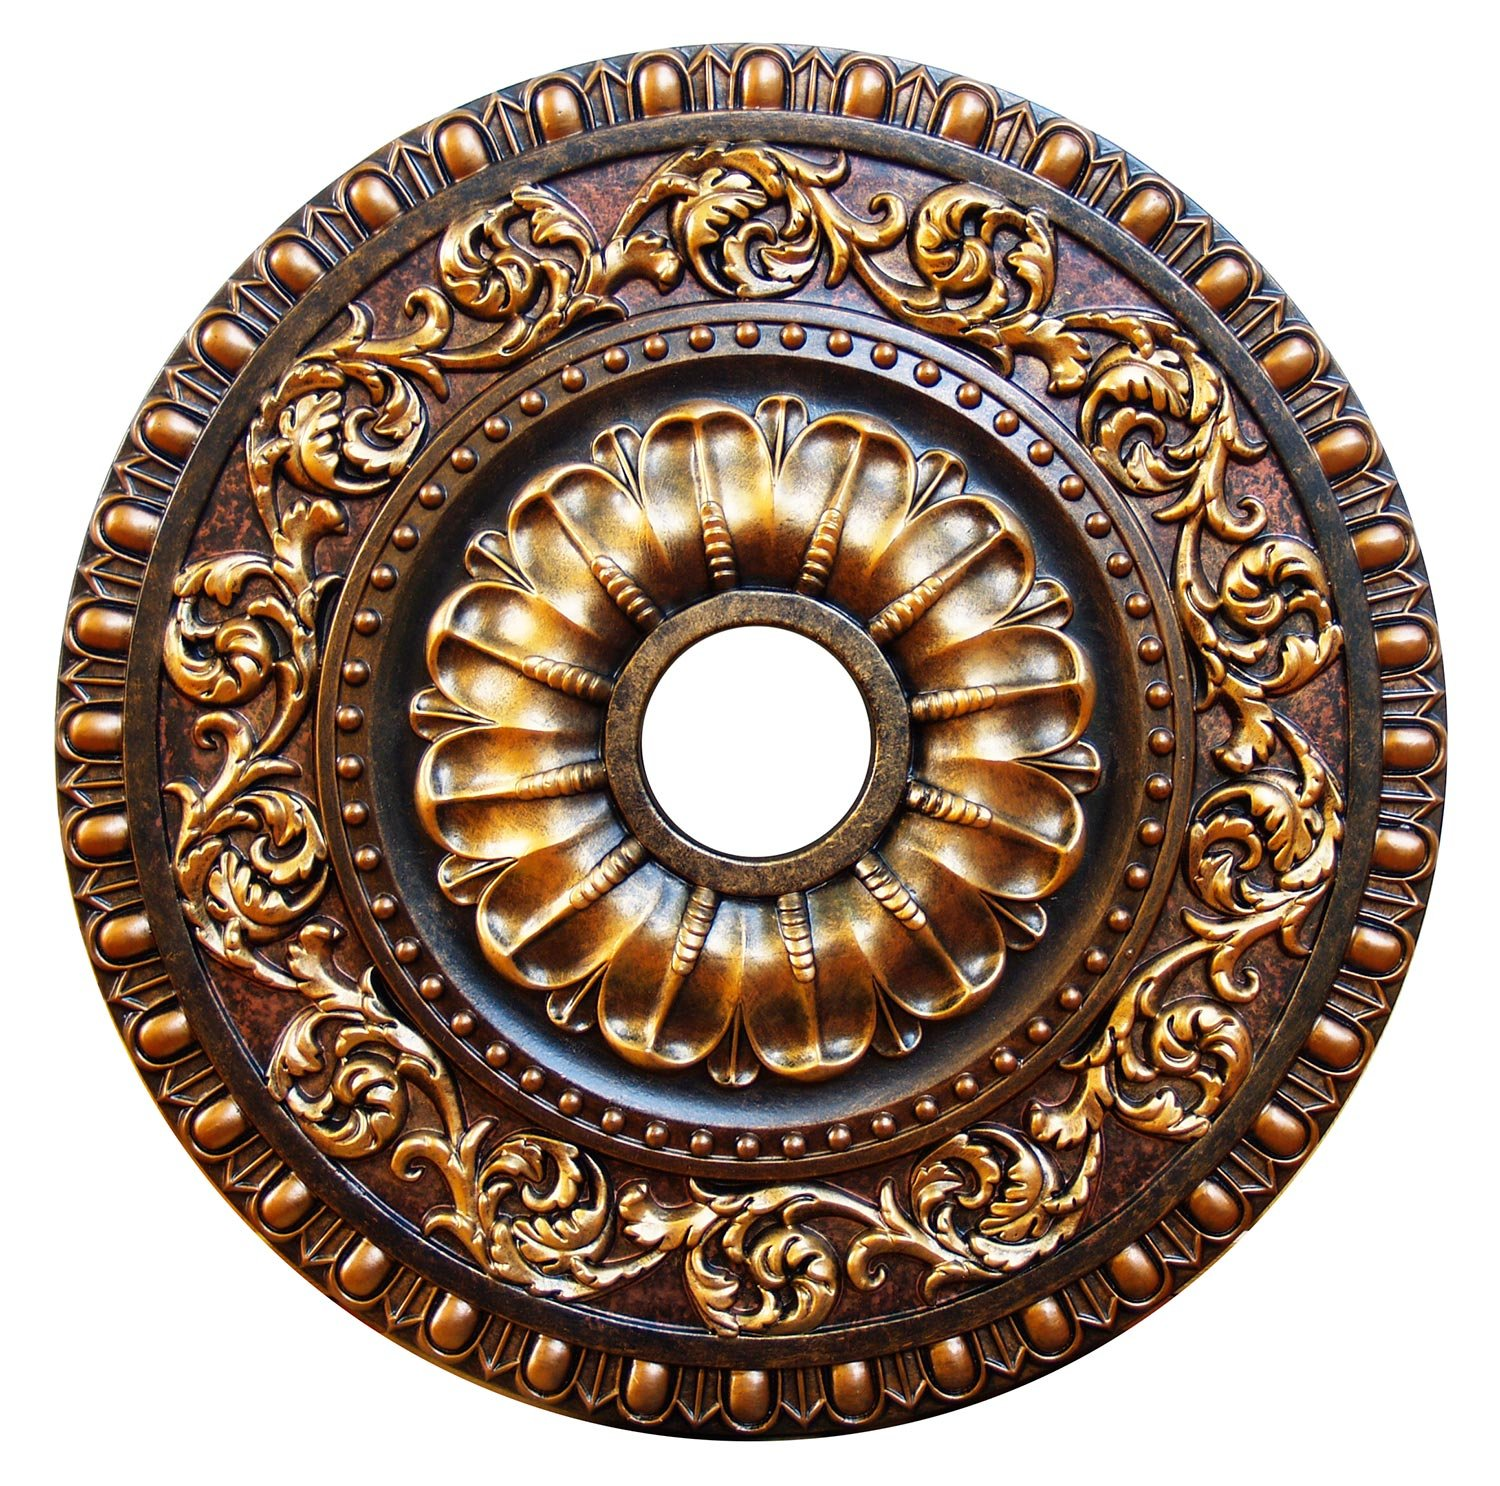 Fine Art Deco ''Autumn Foliage'' Hand Painted Ceiling Medallion 23-5/8 In. Finished in Antique Bronze, Olympic Gold and Antique Copper